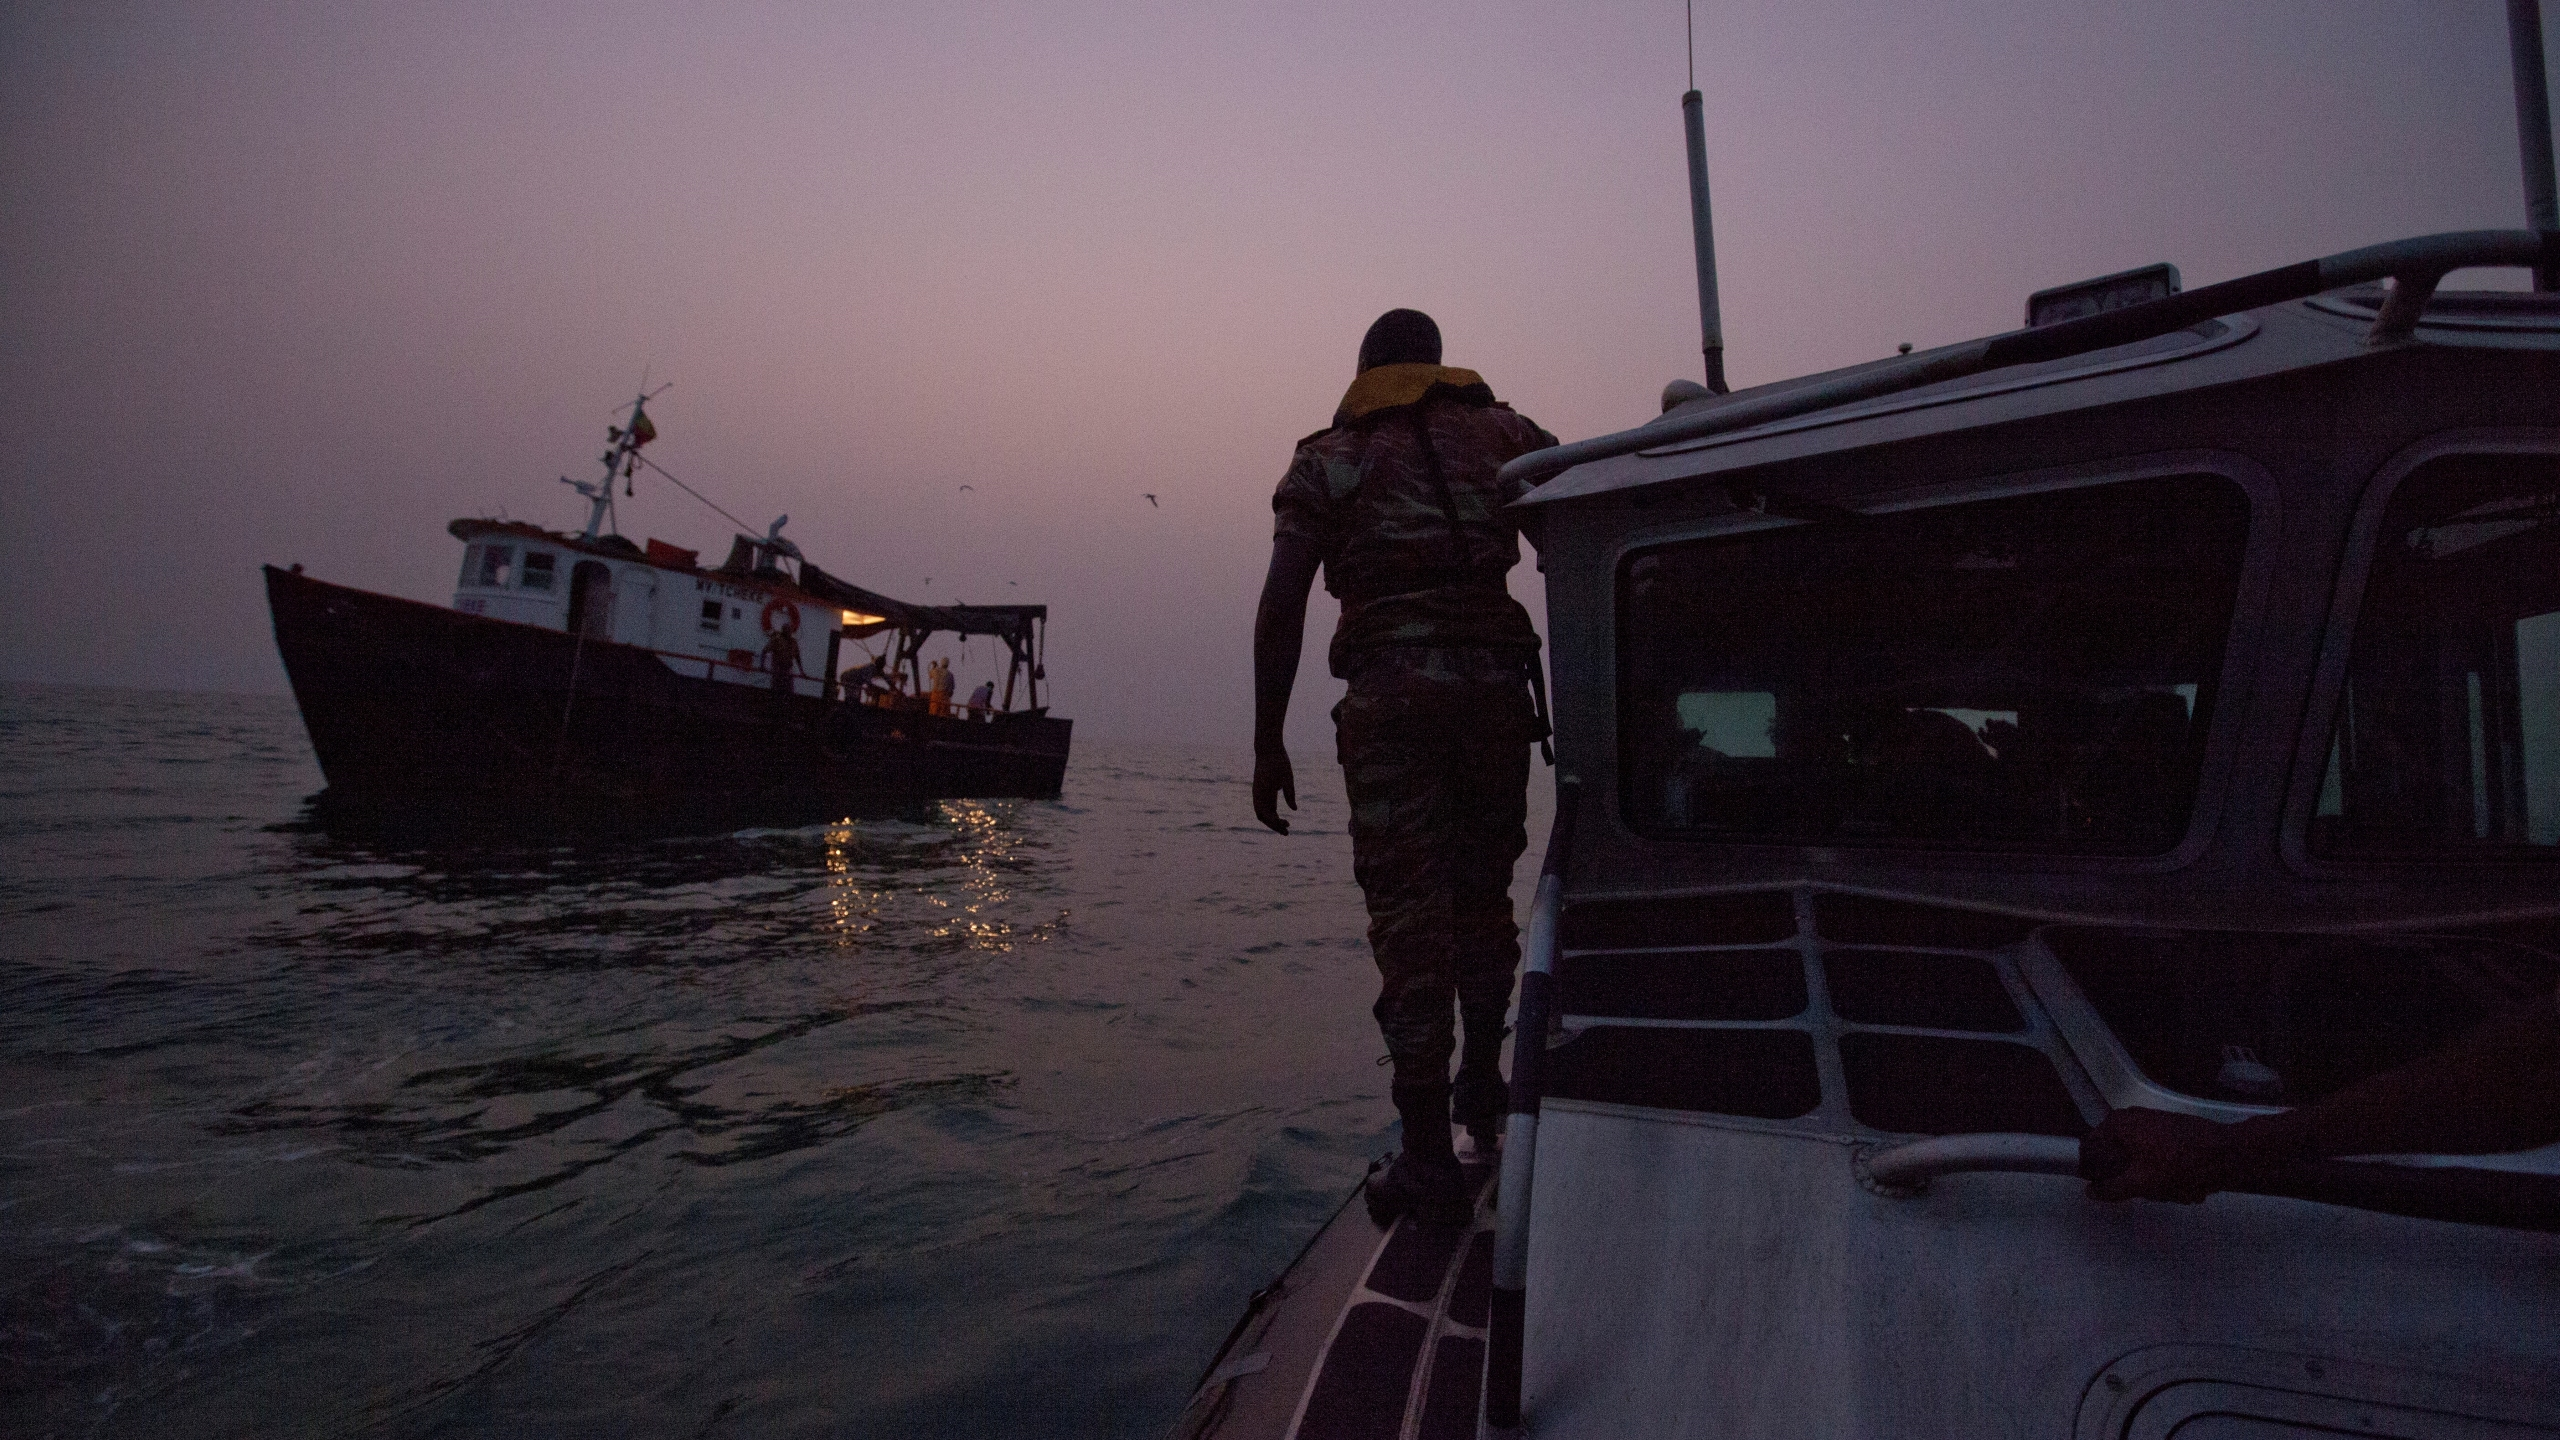 Pirate assaults linked to detrimental fishing